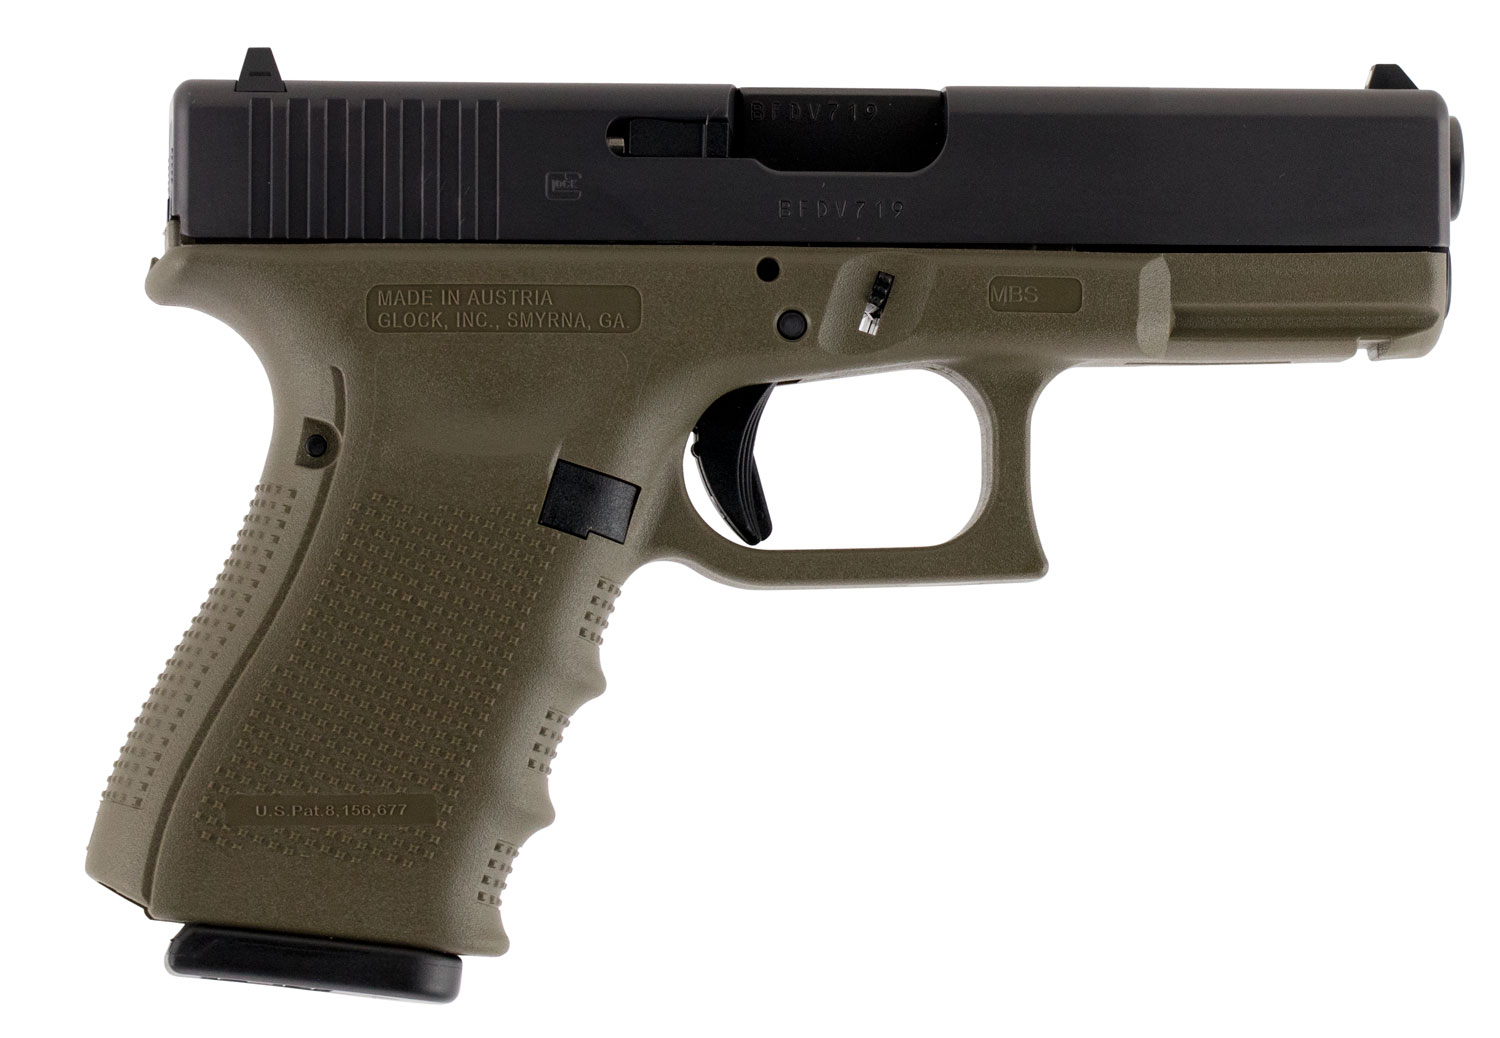 Glock PG1957201 G19 Gen 4 Double 9mm Luger 4.01